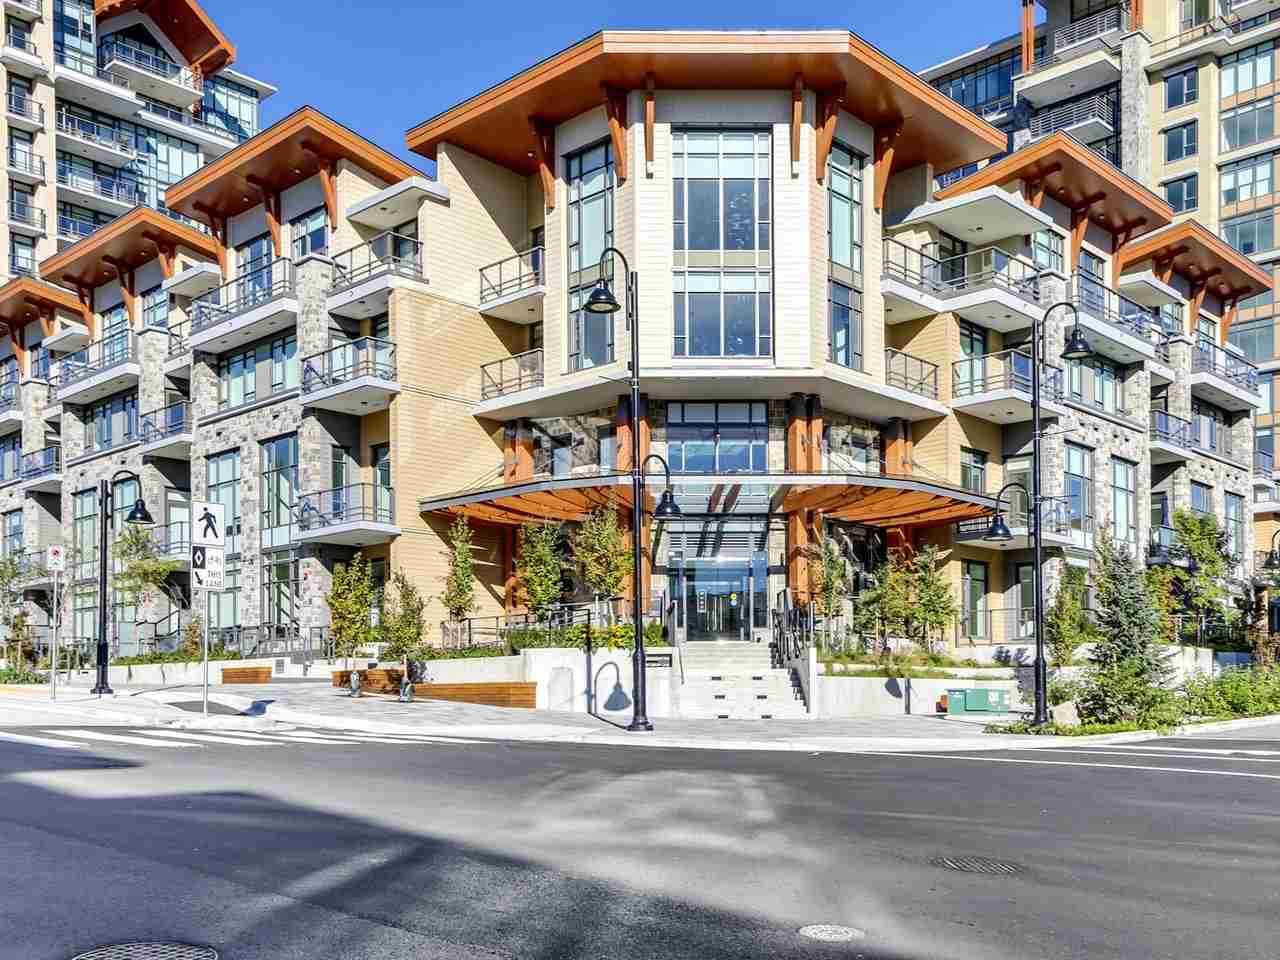 403 2707 LIBRARY LANE - Lynn Valley Apartment/Condo for sale, 1 Bedroom (R2500227) - #1